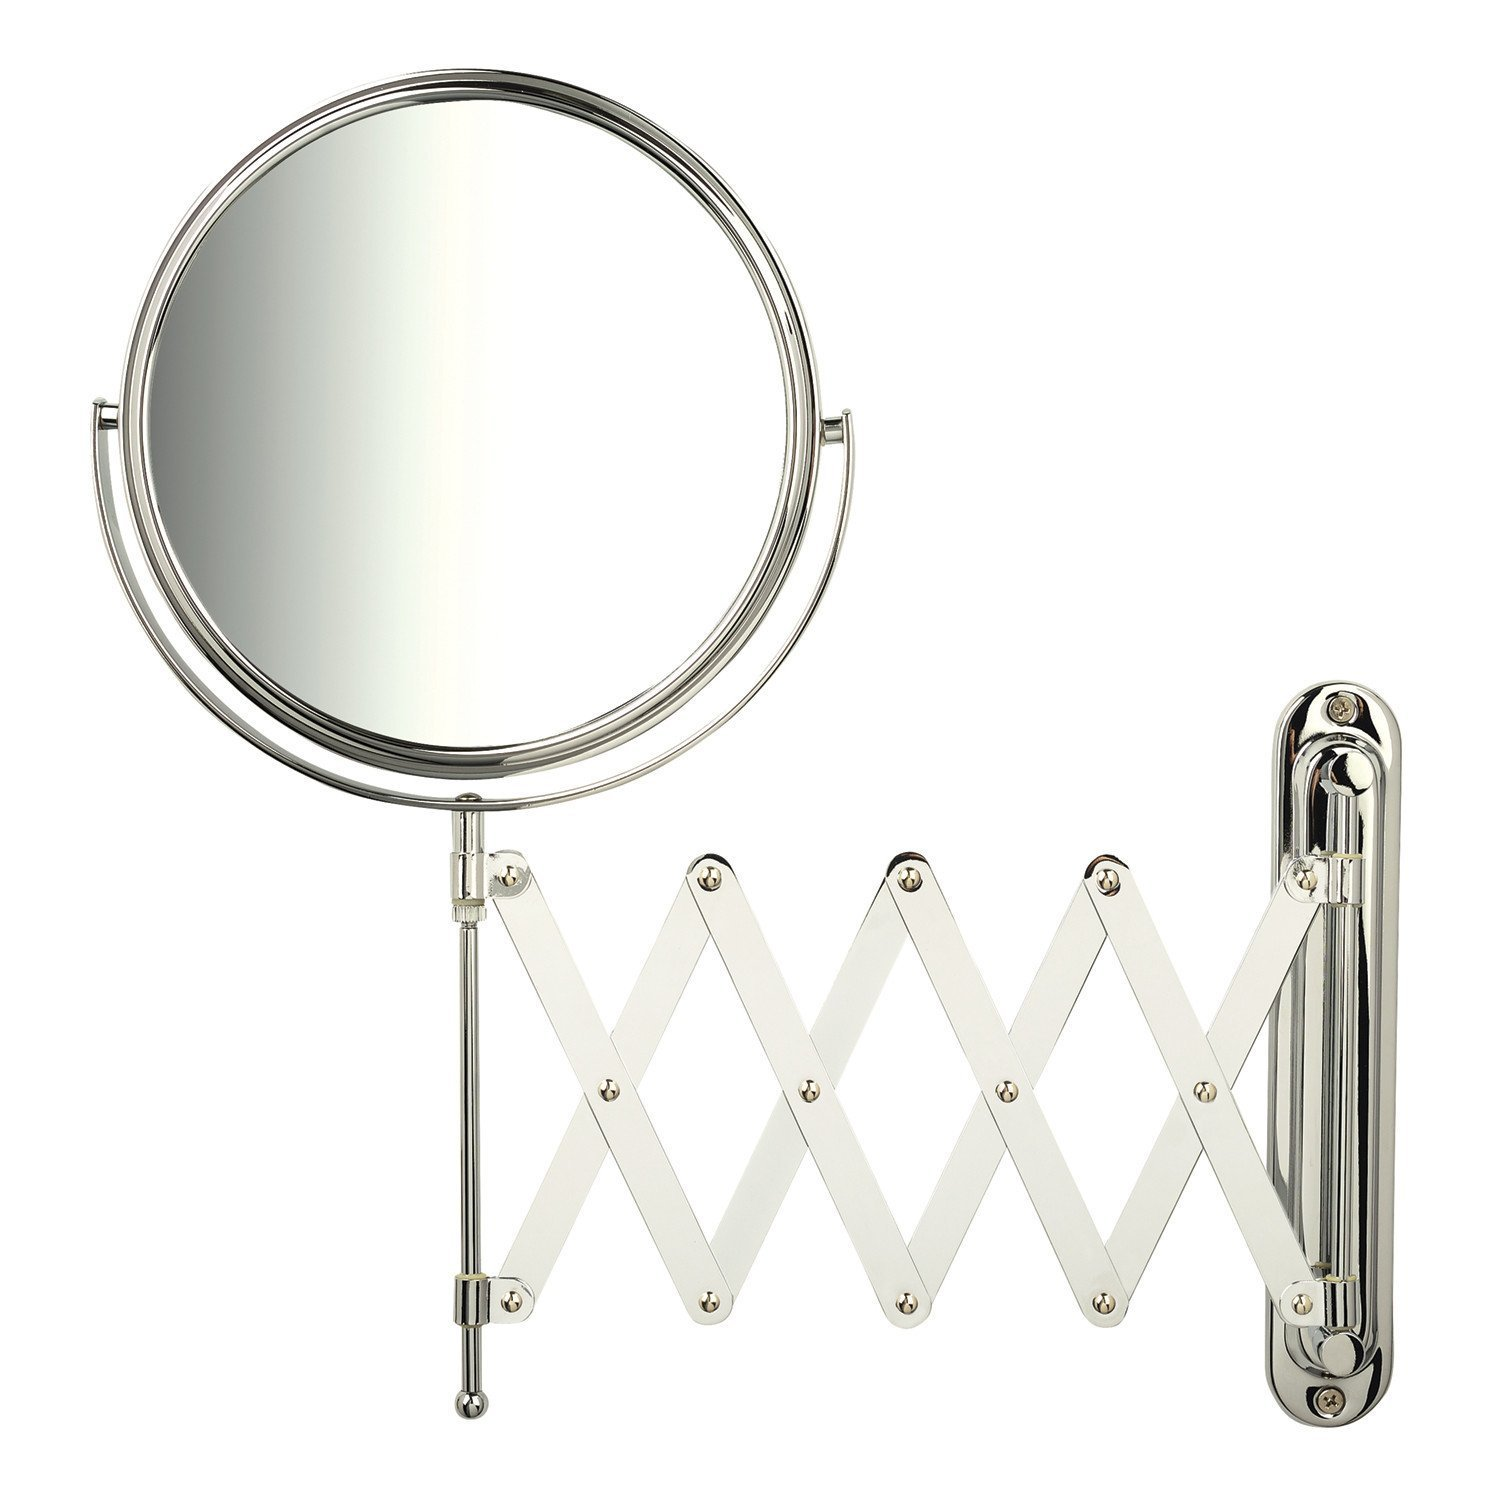 Jerdon JP2027C 1x-7x Magnification Wall Mount Mirror with Scissor Bracket, Chrome by Jerdon